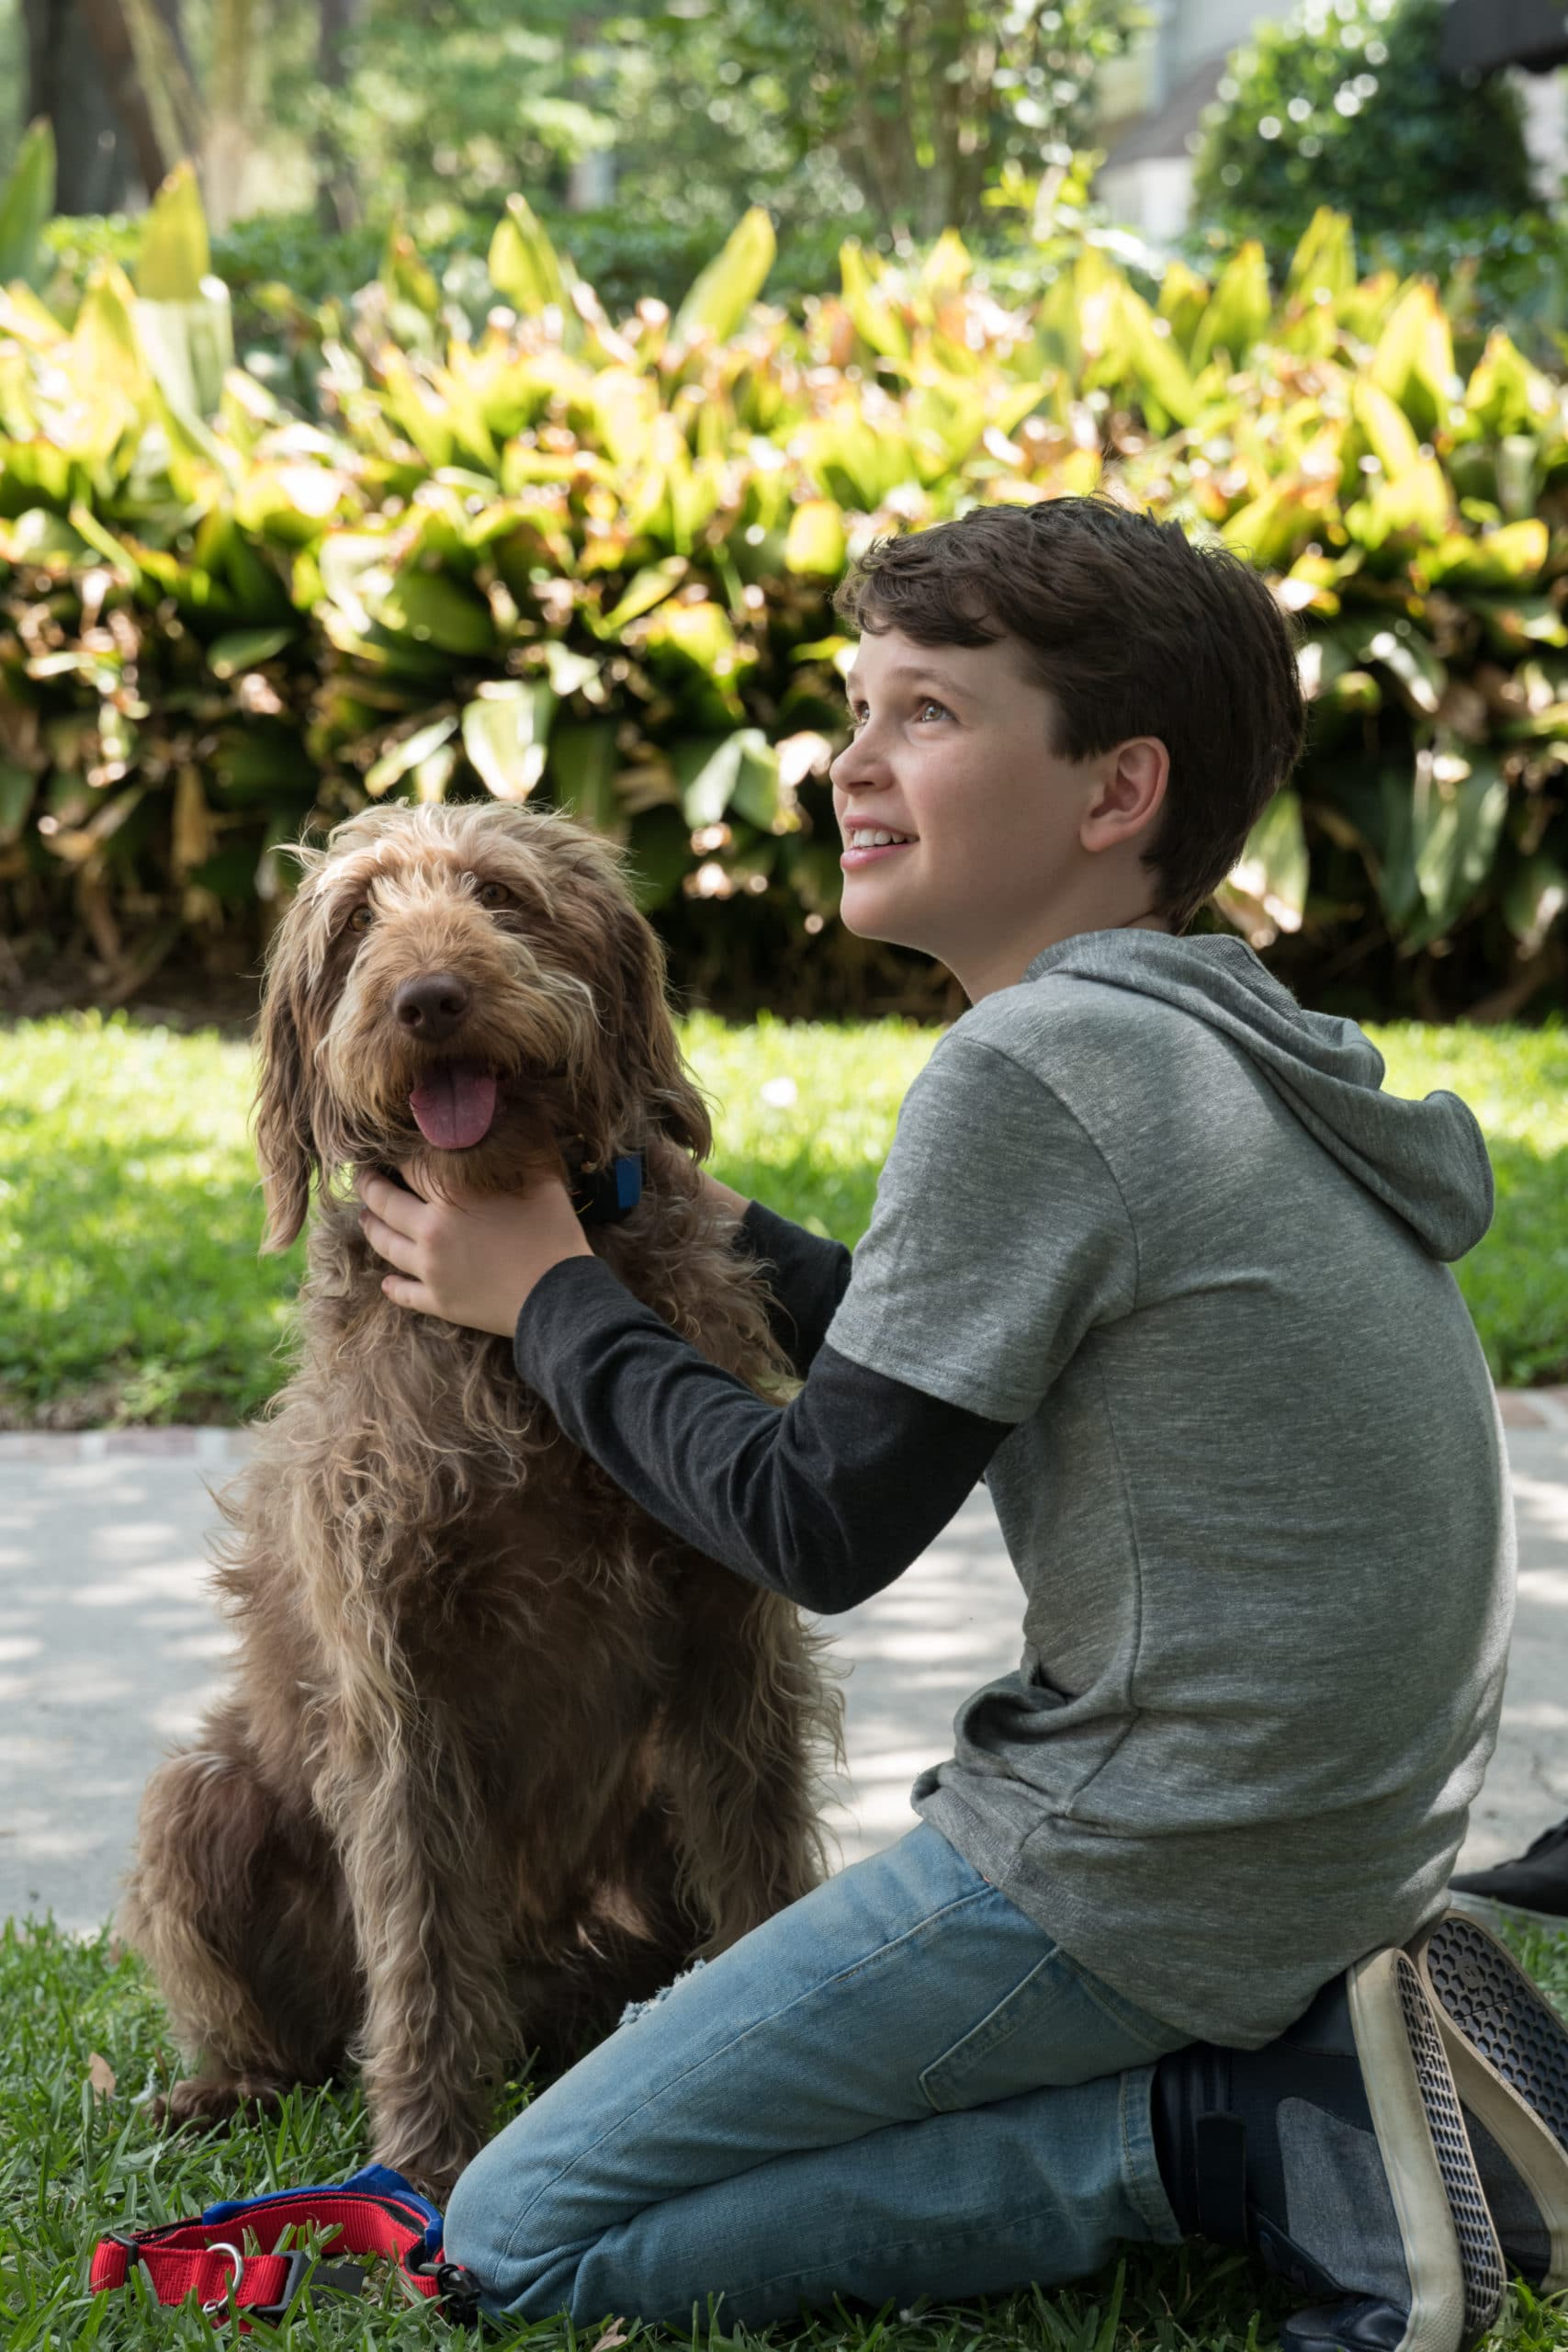 Thinks Like a Dog Friends. It's time to give canines some love! Don't miss the paws-itively heartwarming family comedyThink Like a Dog, premiering on Digital, and On Demand June 9 from Lionsgate.